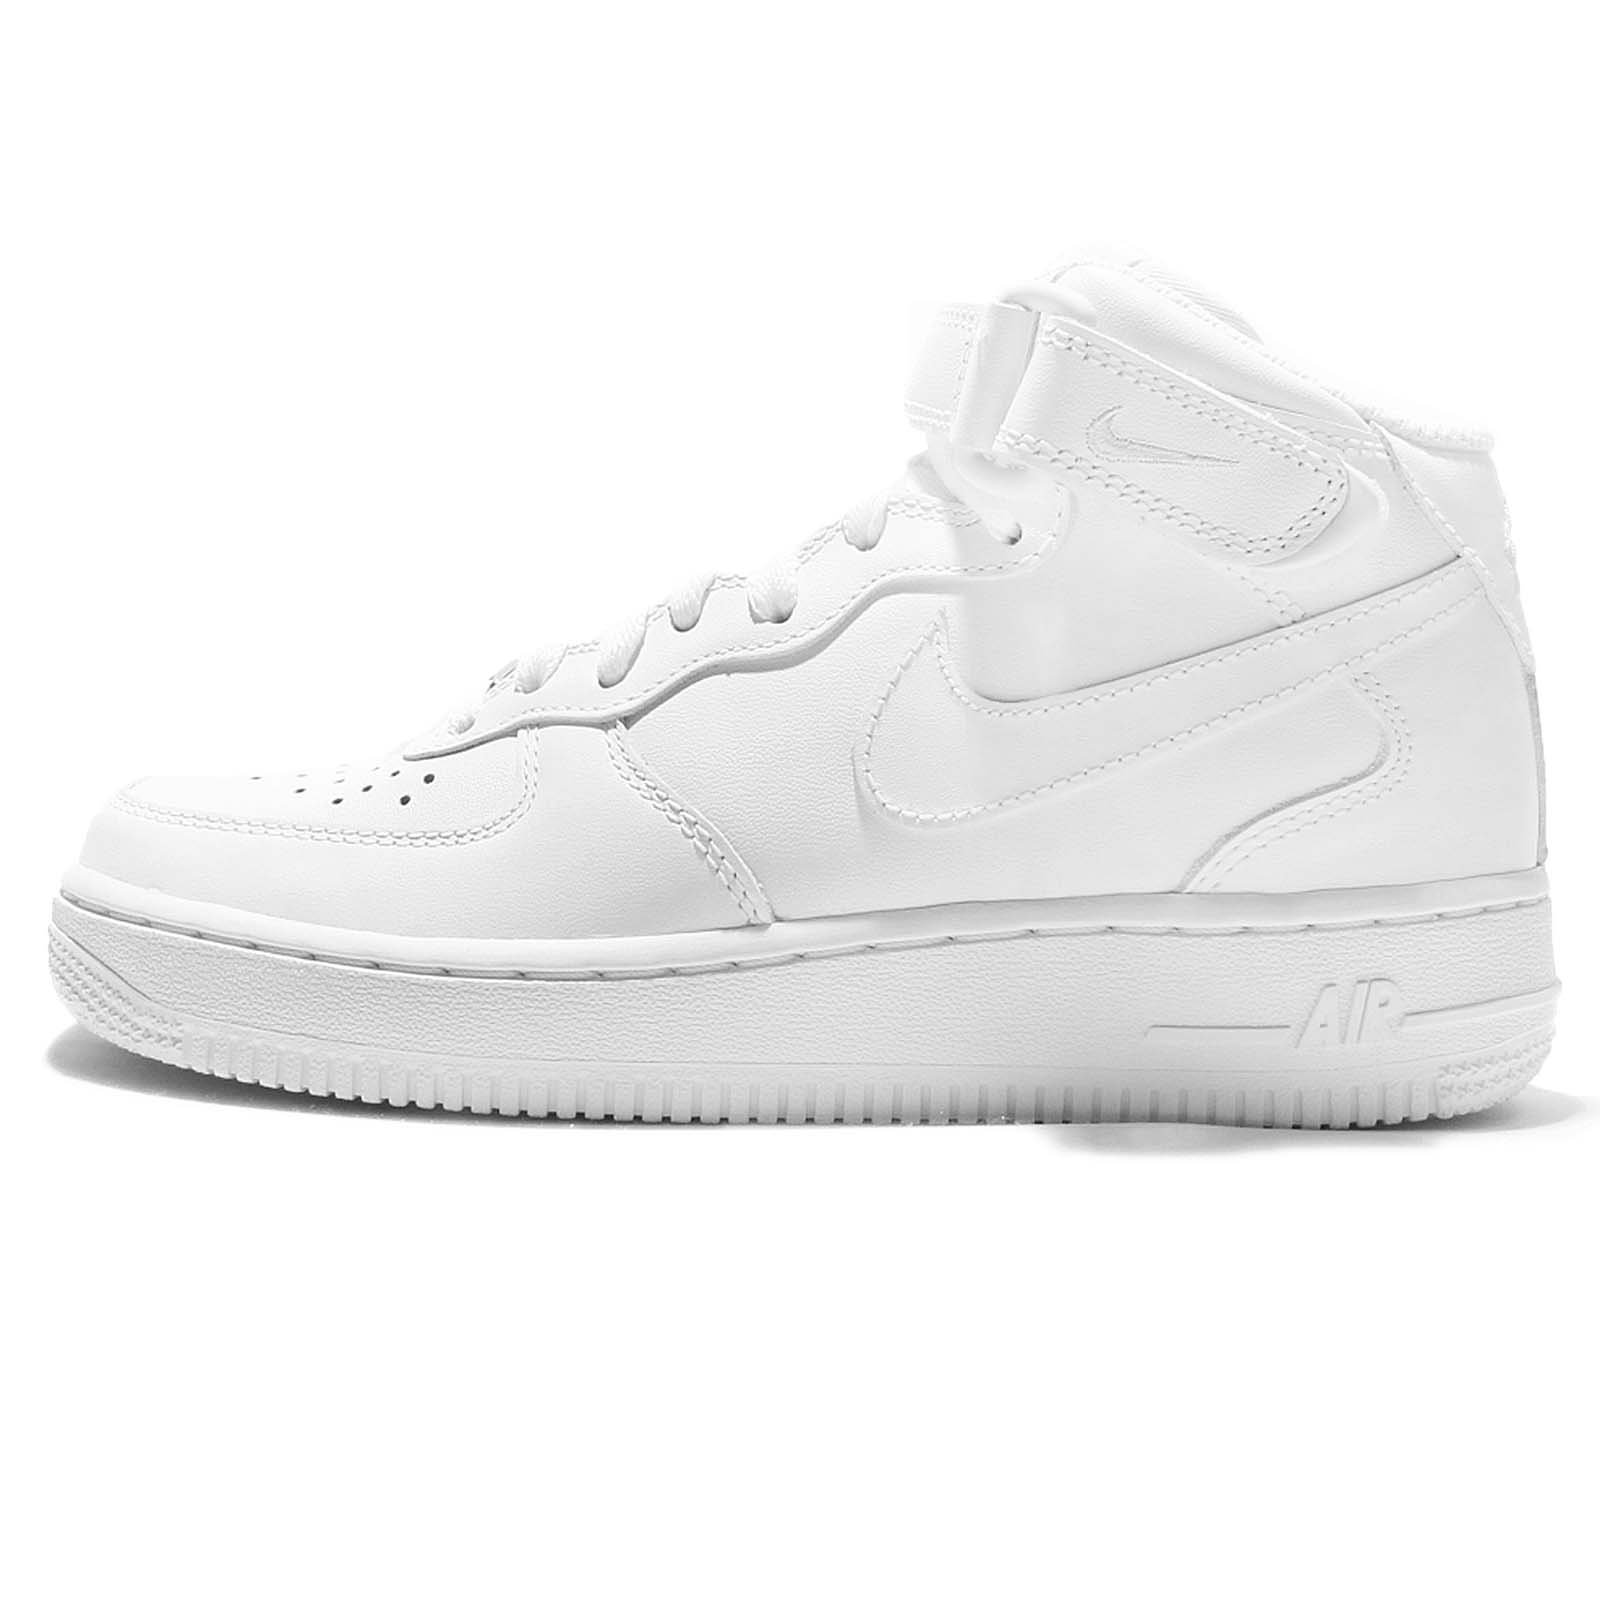 NIKE Wmns Air Force 1 Mid 07 Leather Women Lifestyle Casual Sneakers New All White - 8 by NIKE